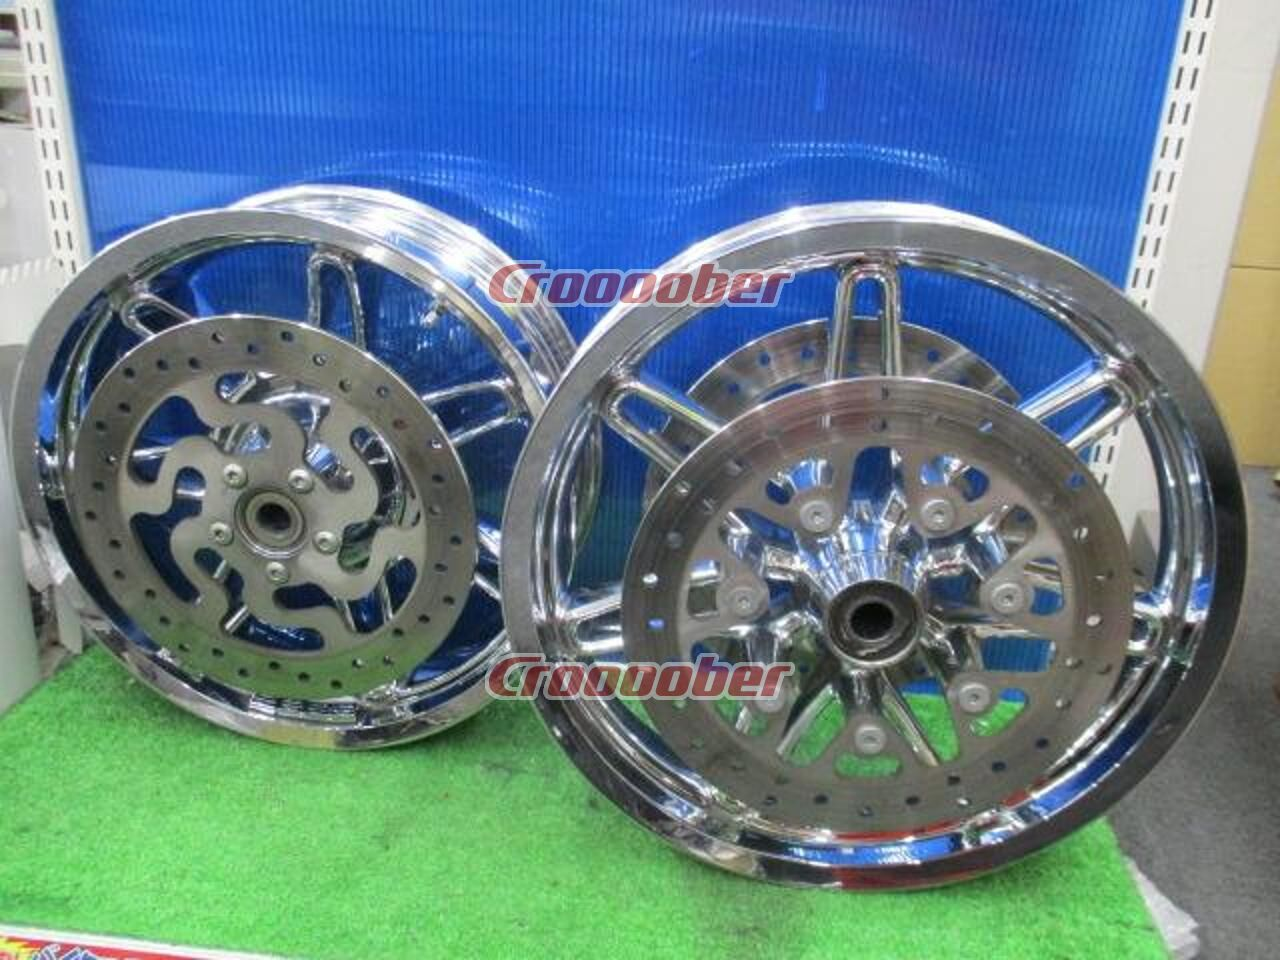 Used Harley Davidson Wheels >> Harley Harley Davidson Cvo Wheel Front And Rear Set Ultra Rims For Sale Croooober